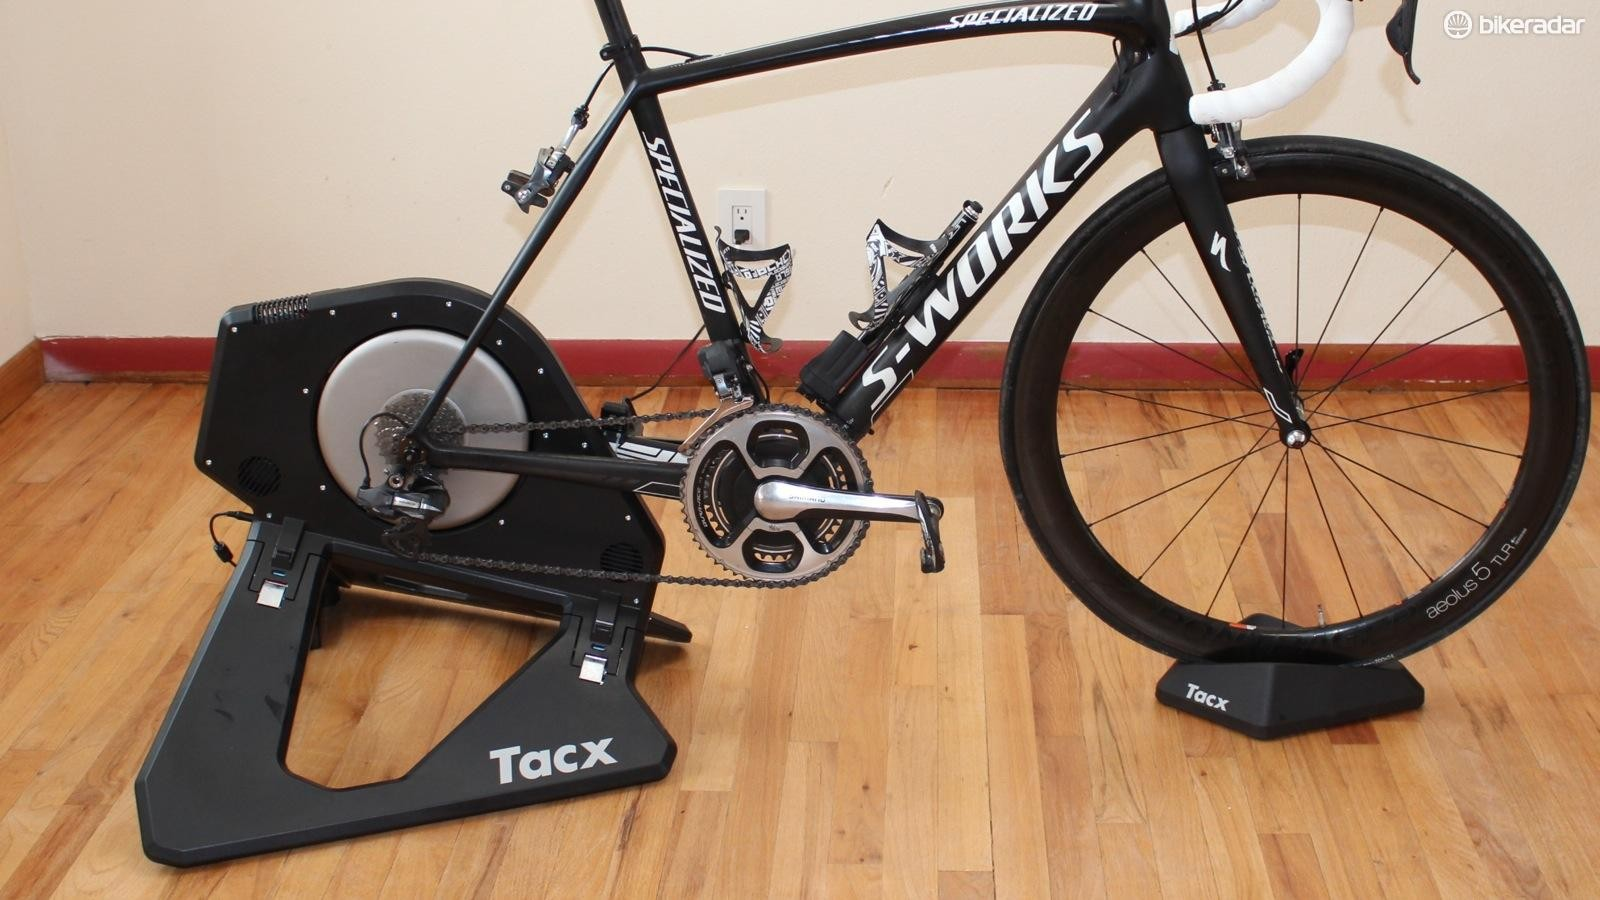 Unlike the Wahoo Kickr, the Tacx Neo Power requires a front wheel riser block